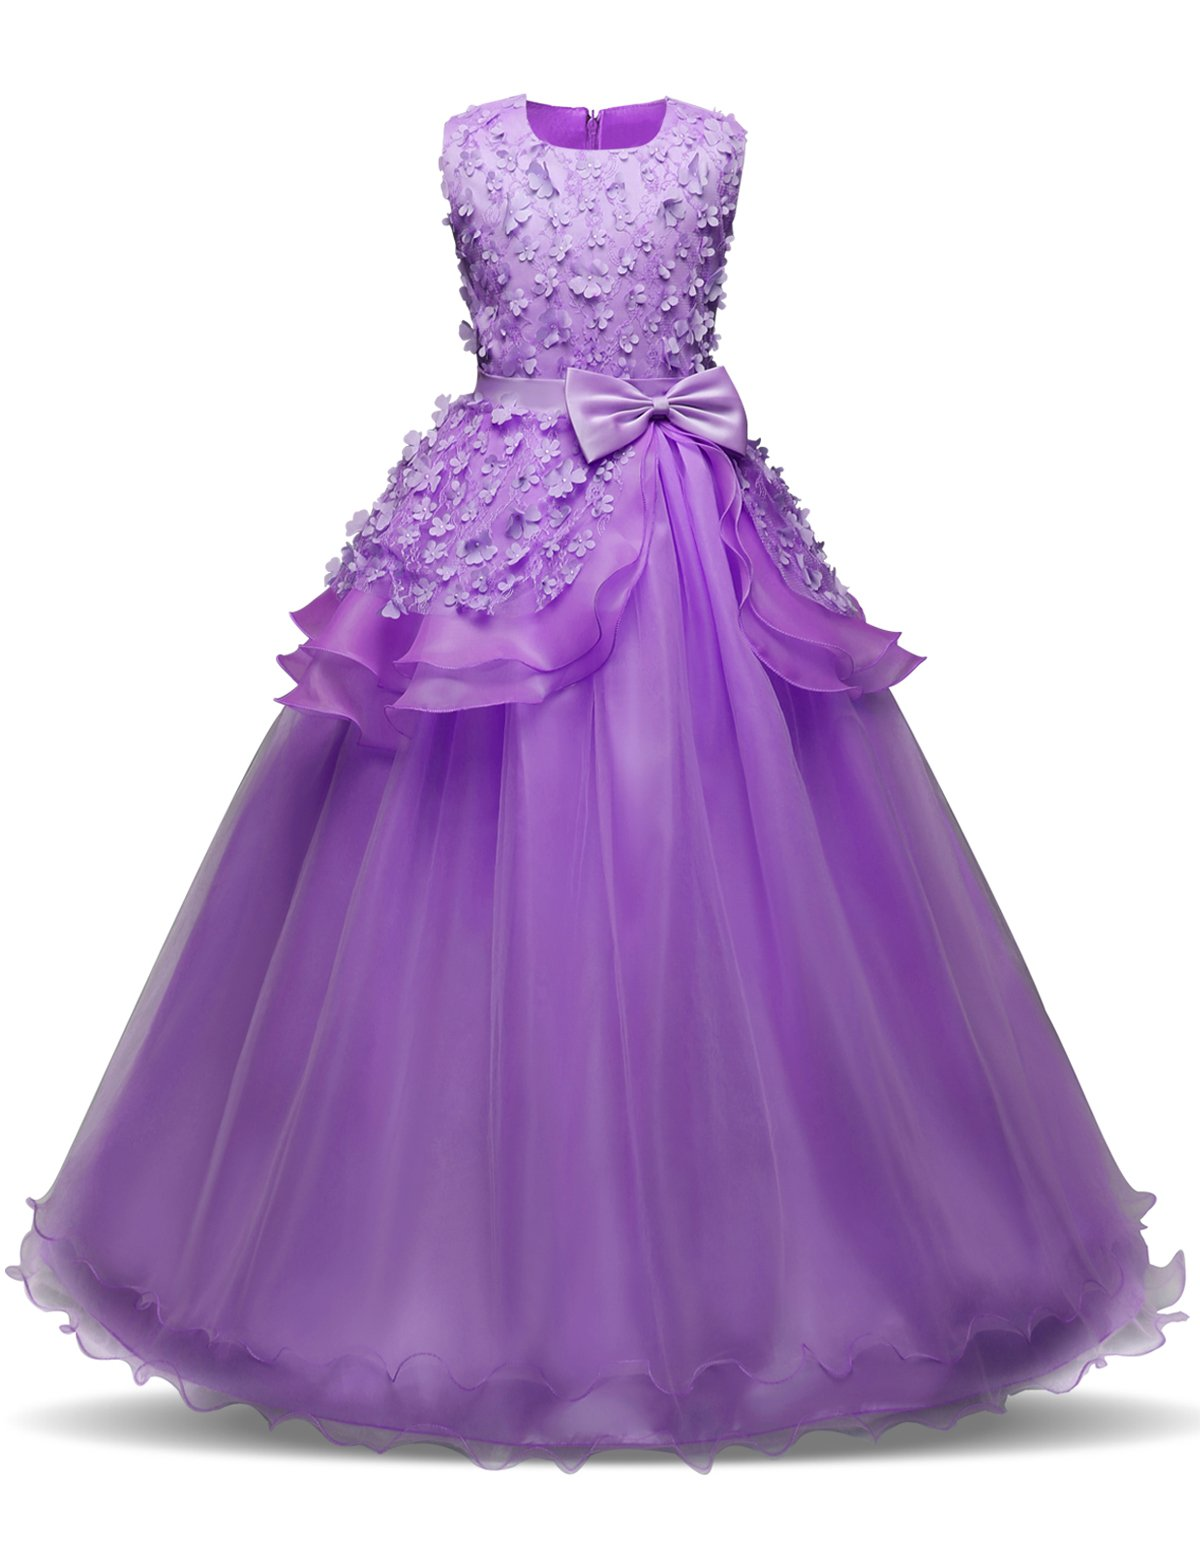 NNJXD Girl Sleeveless Embroidery Princess Pageant Dresses Kids Prom ...